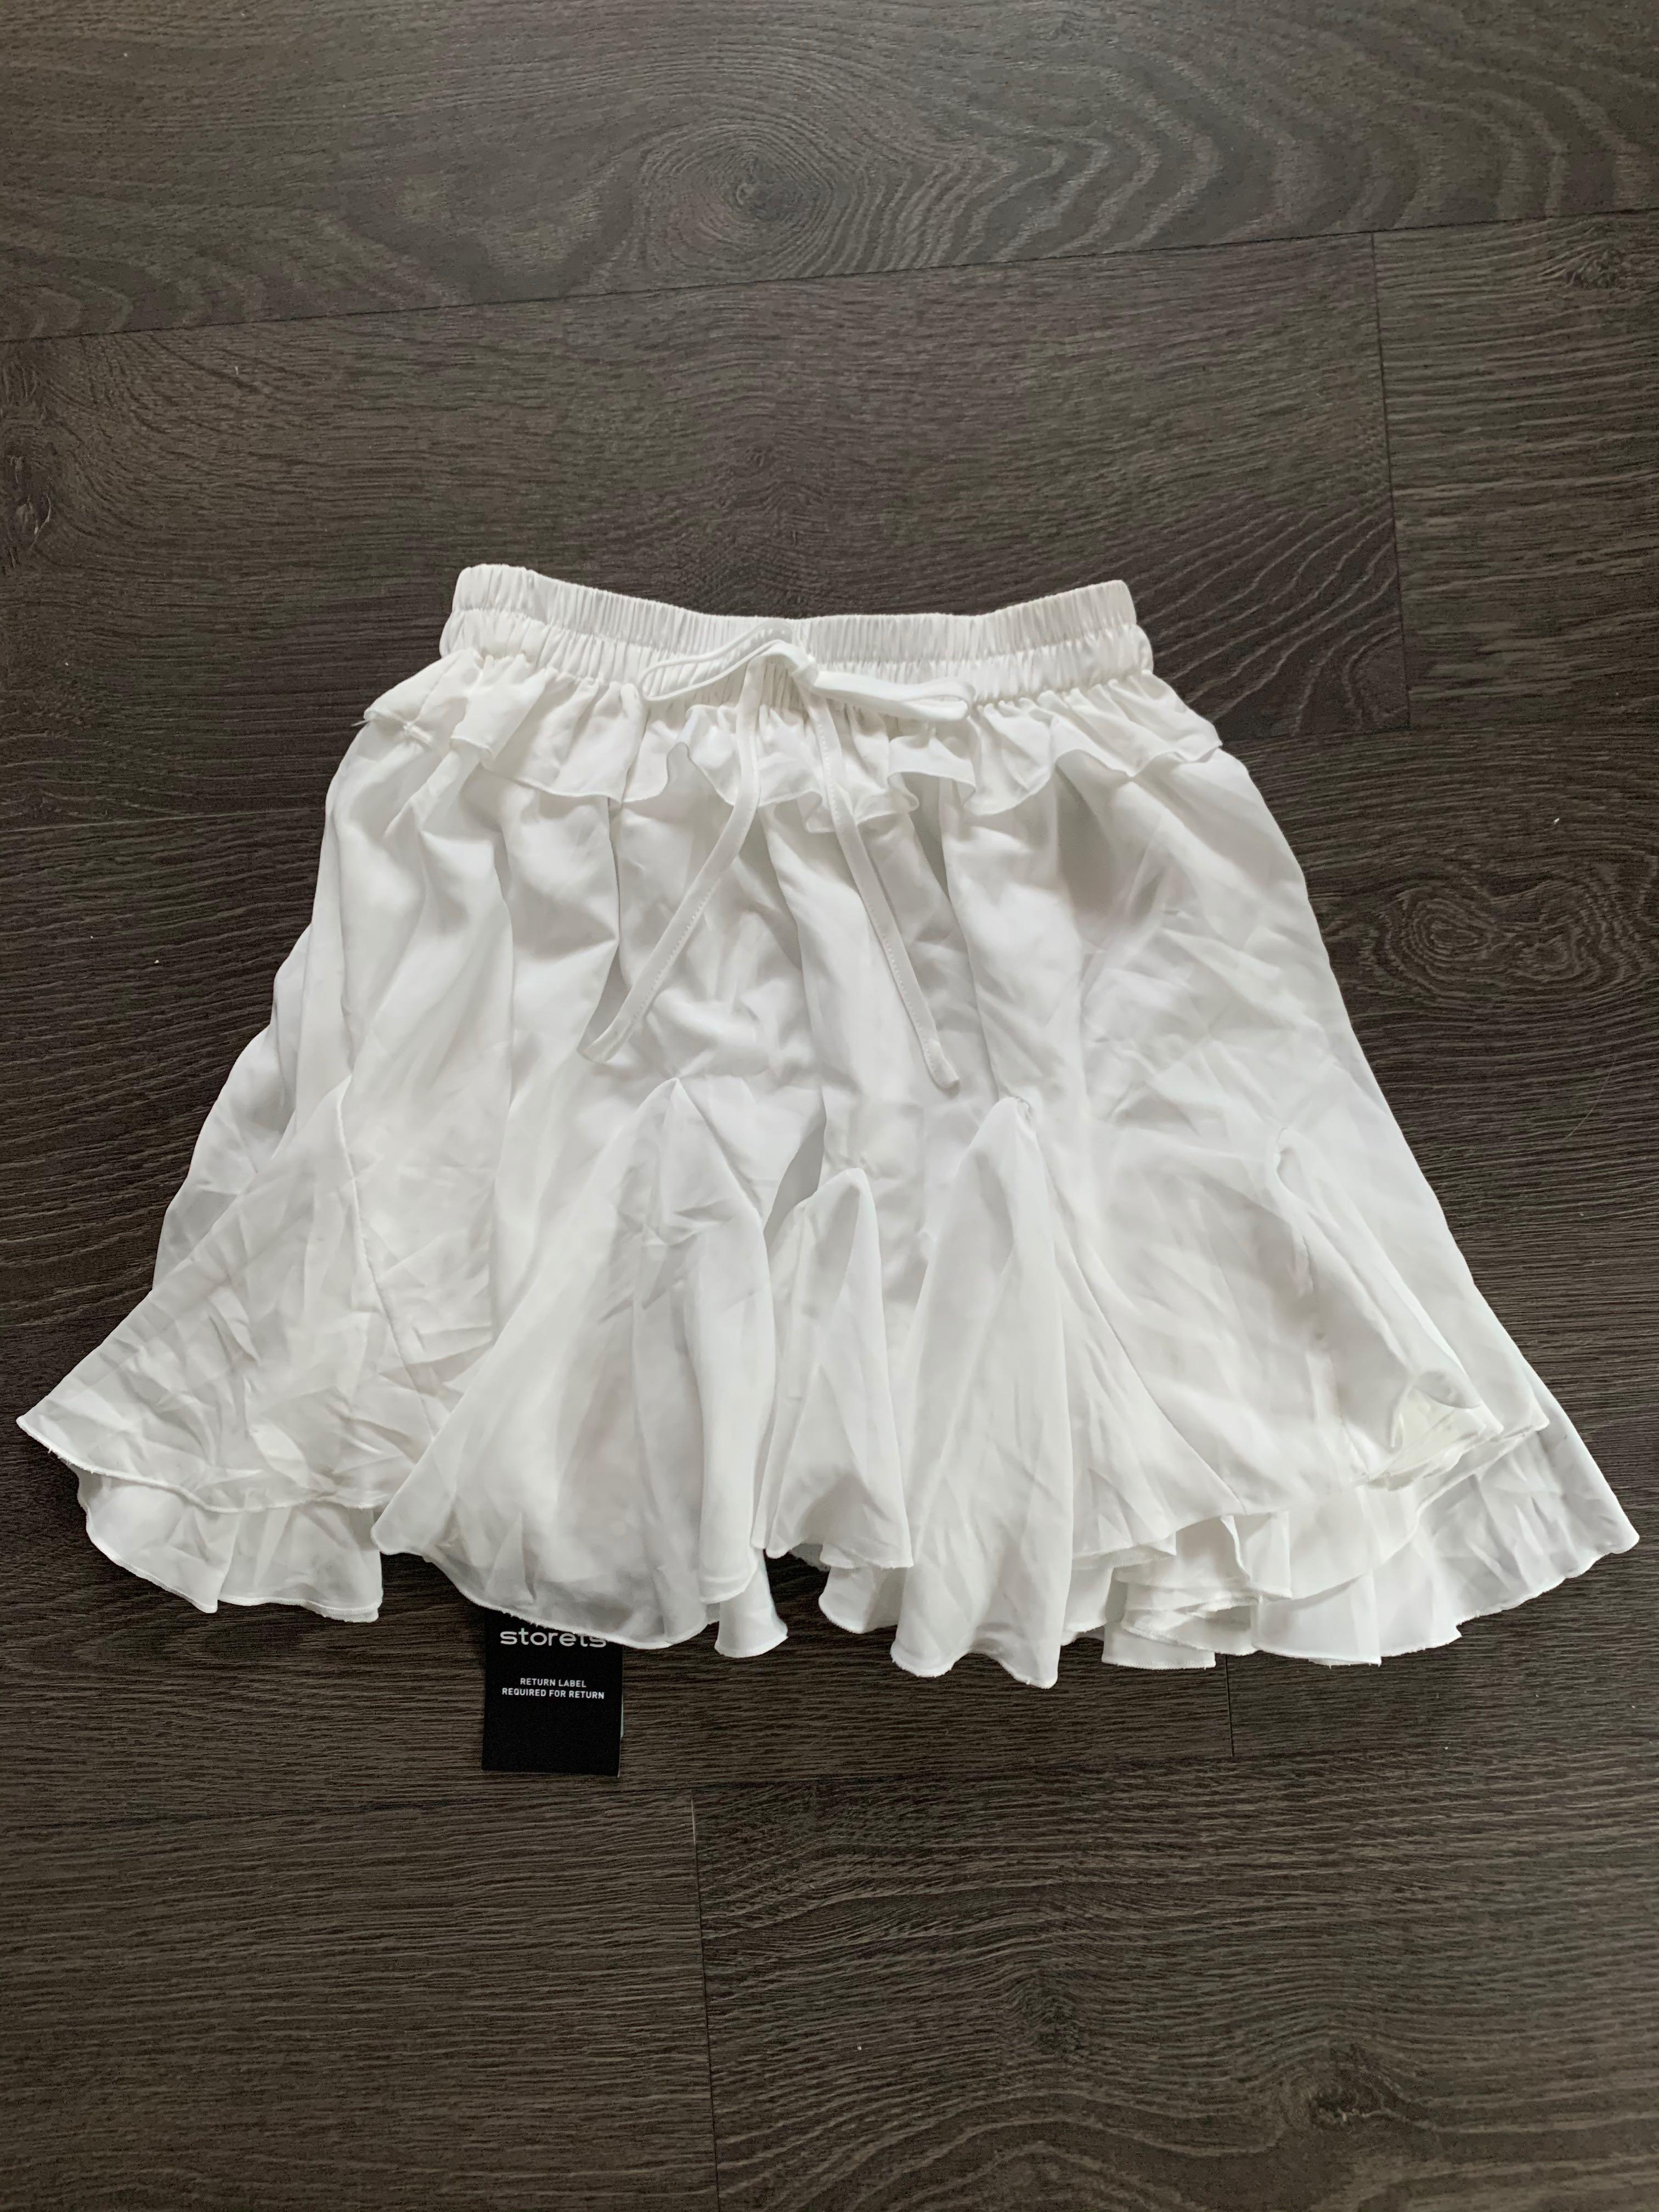 NEW With Tags Storets White Angelic Skirt Skort size S/M